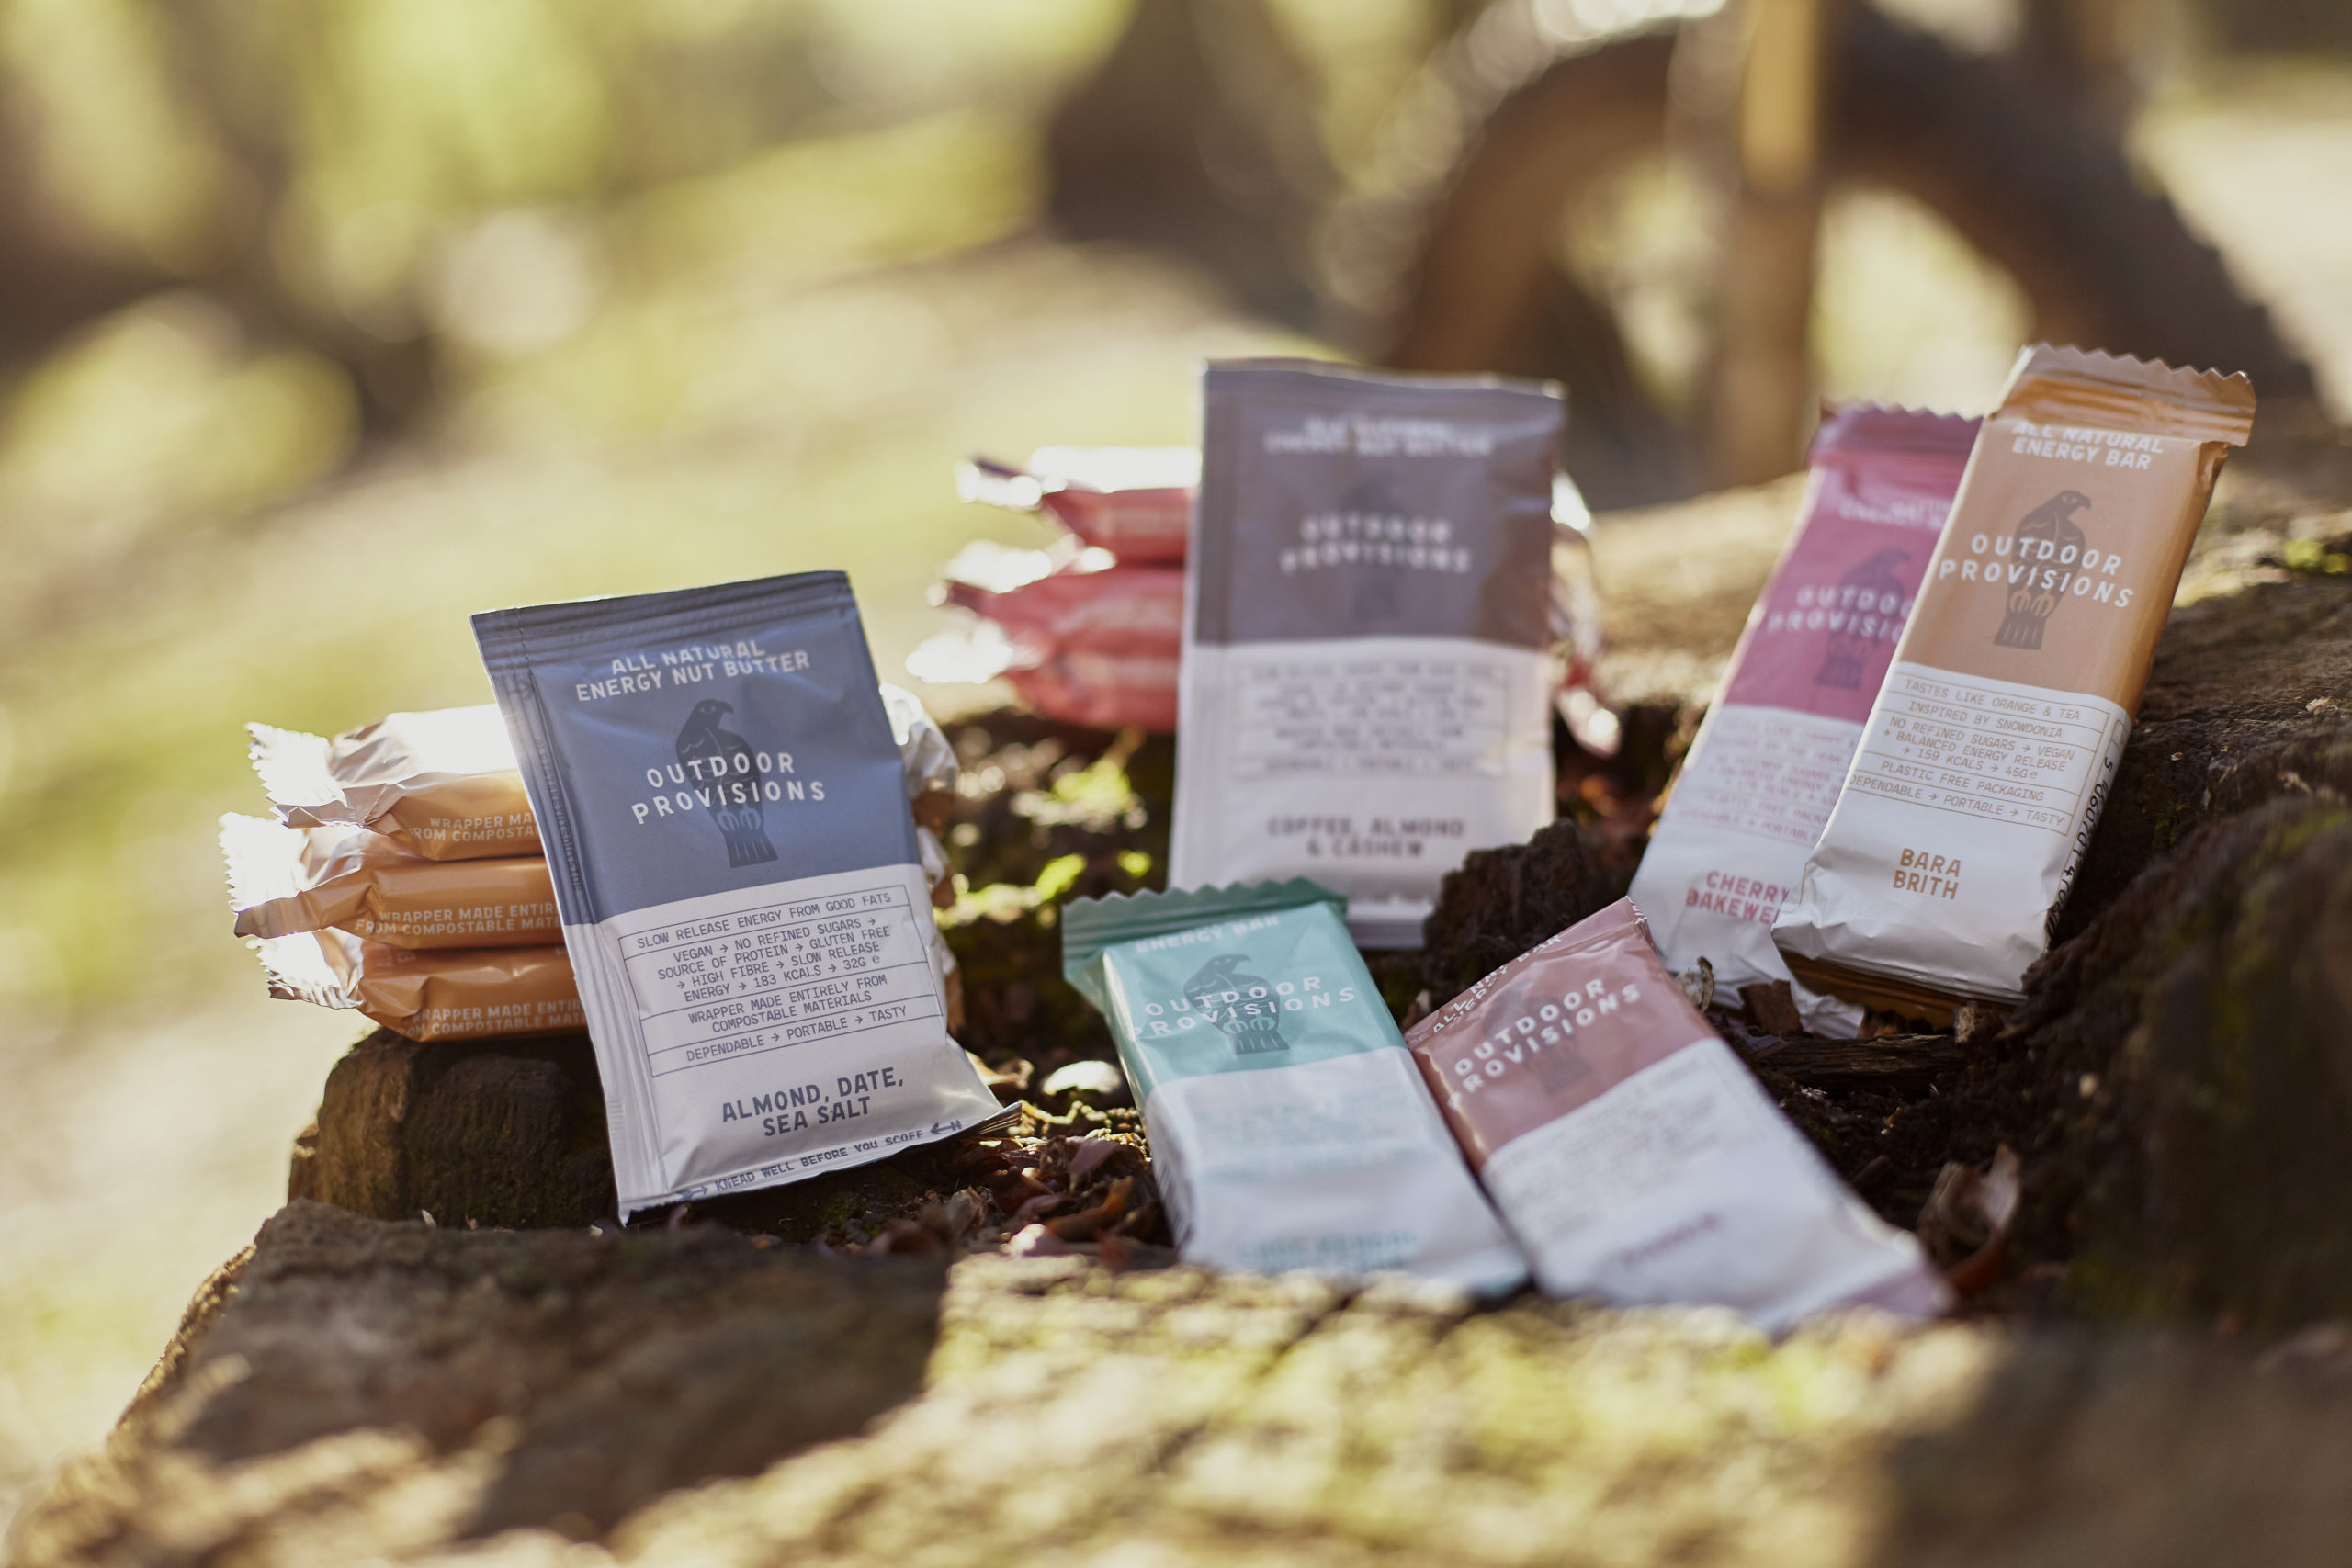 Outdoor Provisions bars